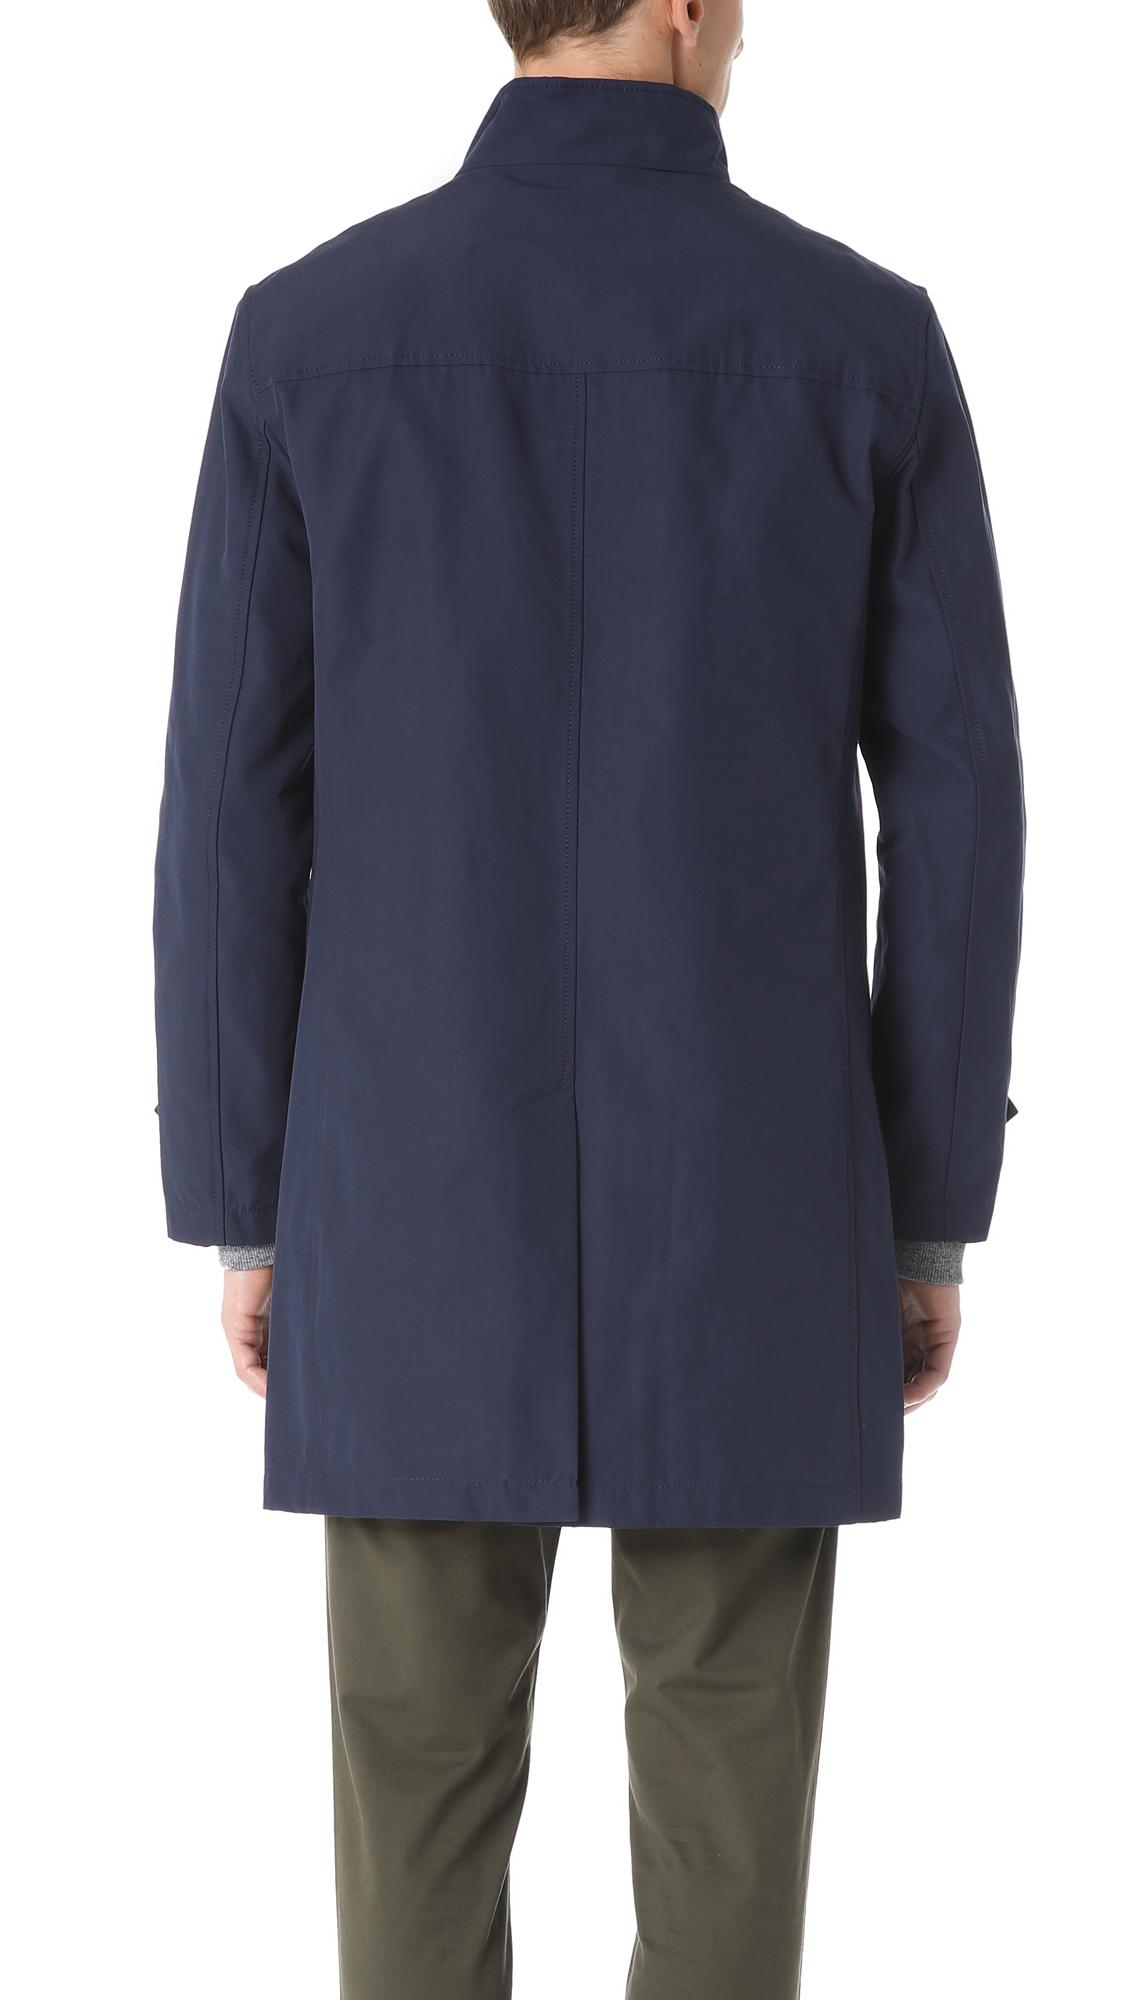 Club Monaco Cotton Mac Jacket in Navy (Blue) for Men